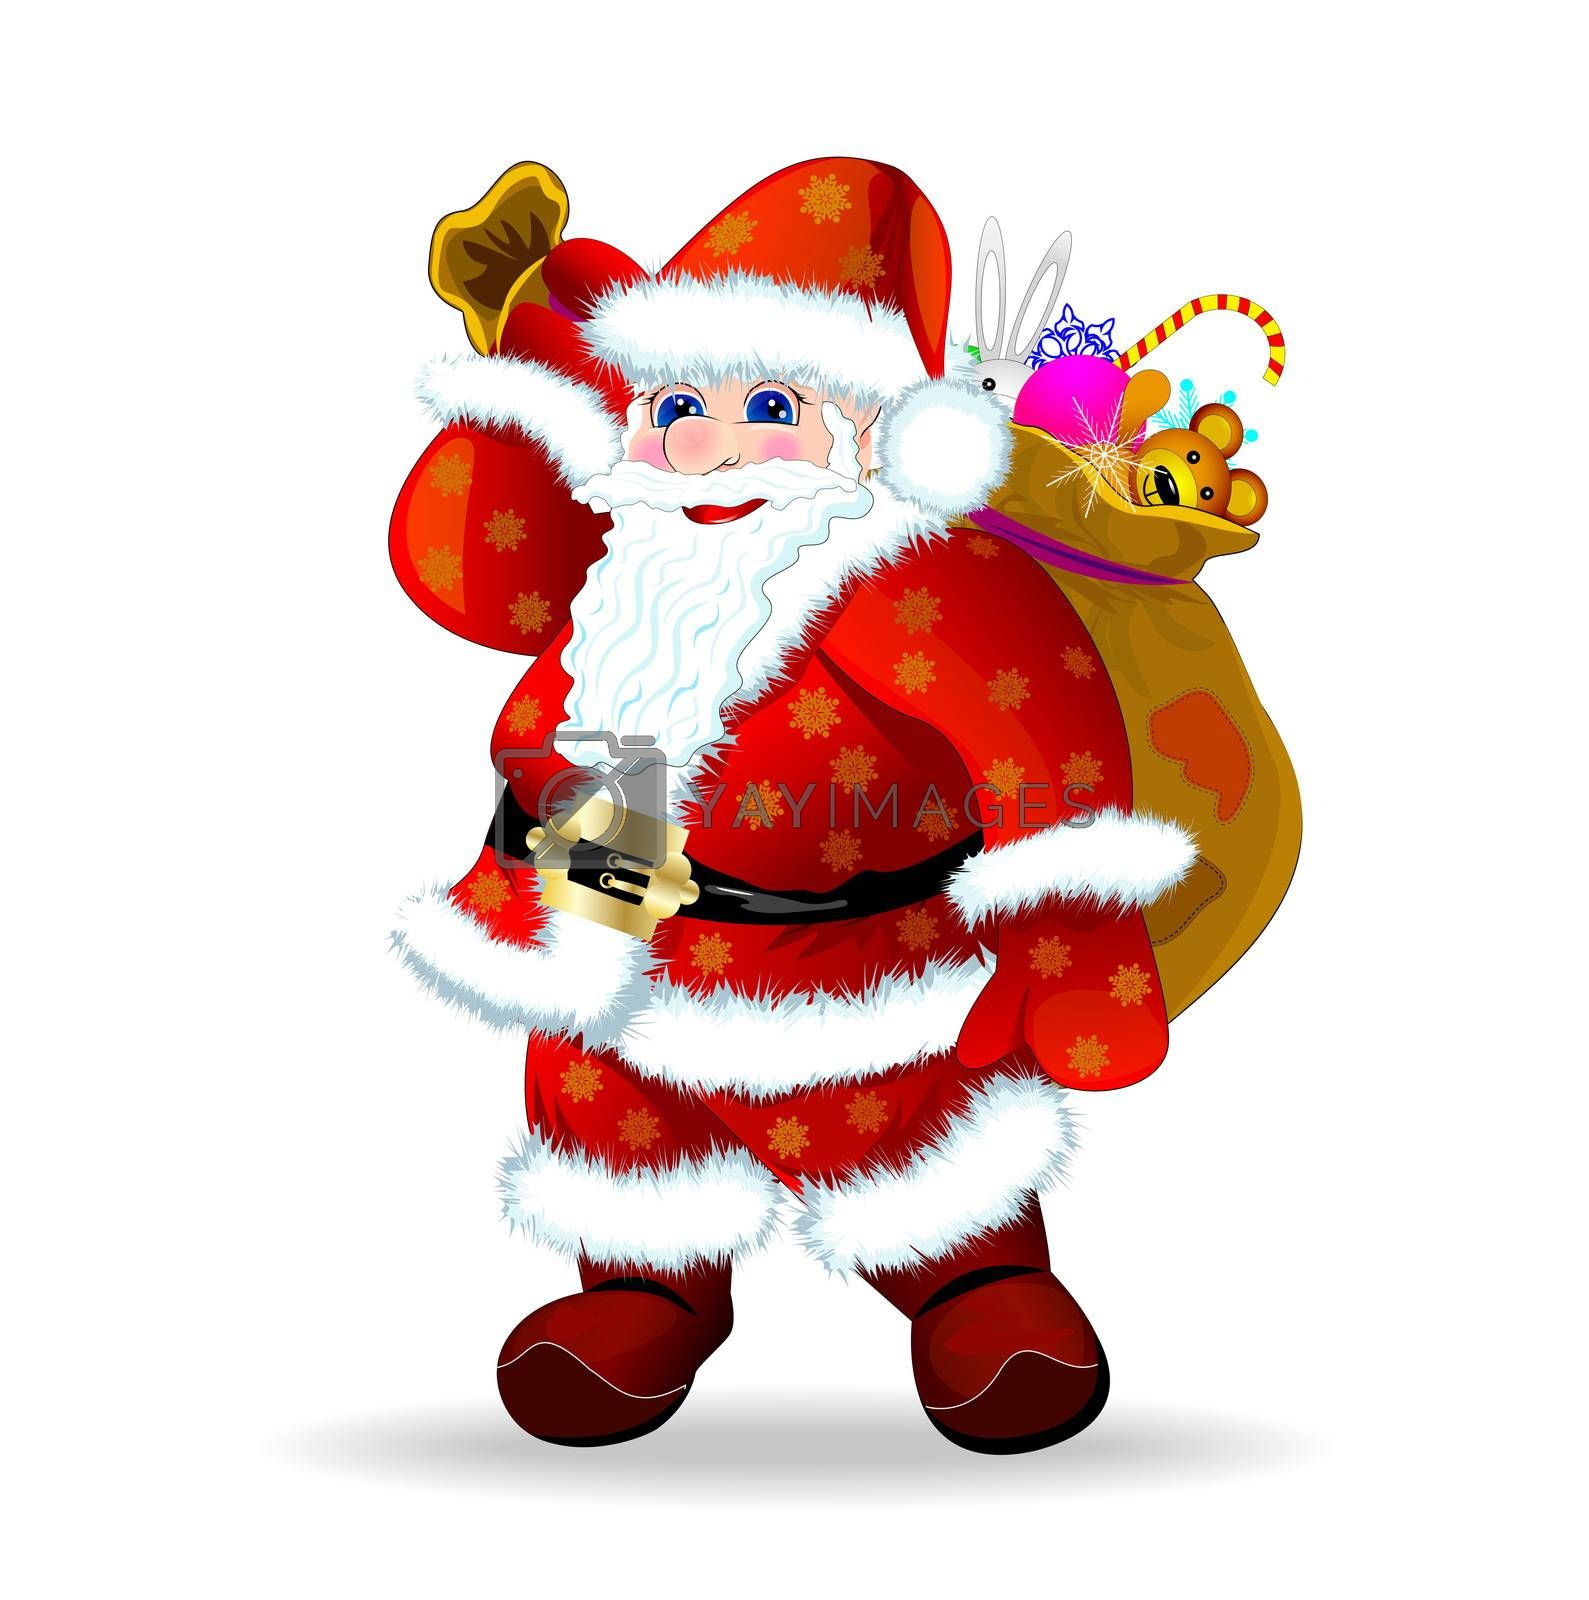 Santa Claus with presents by liolle